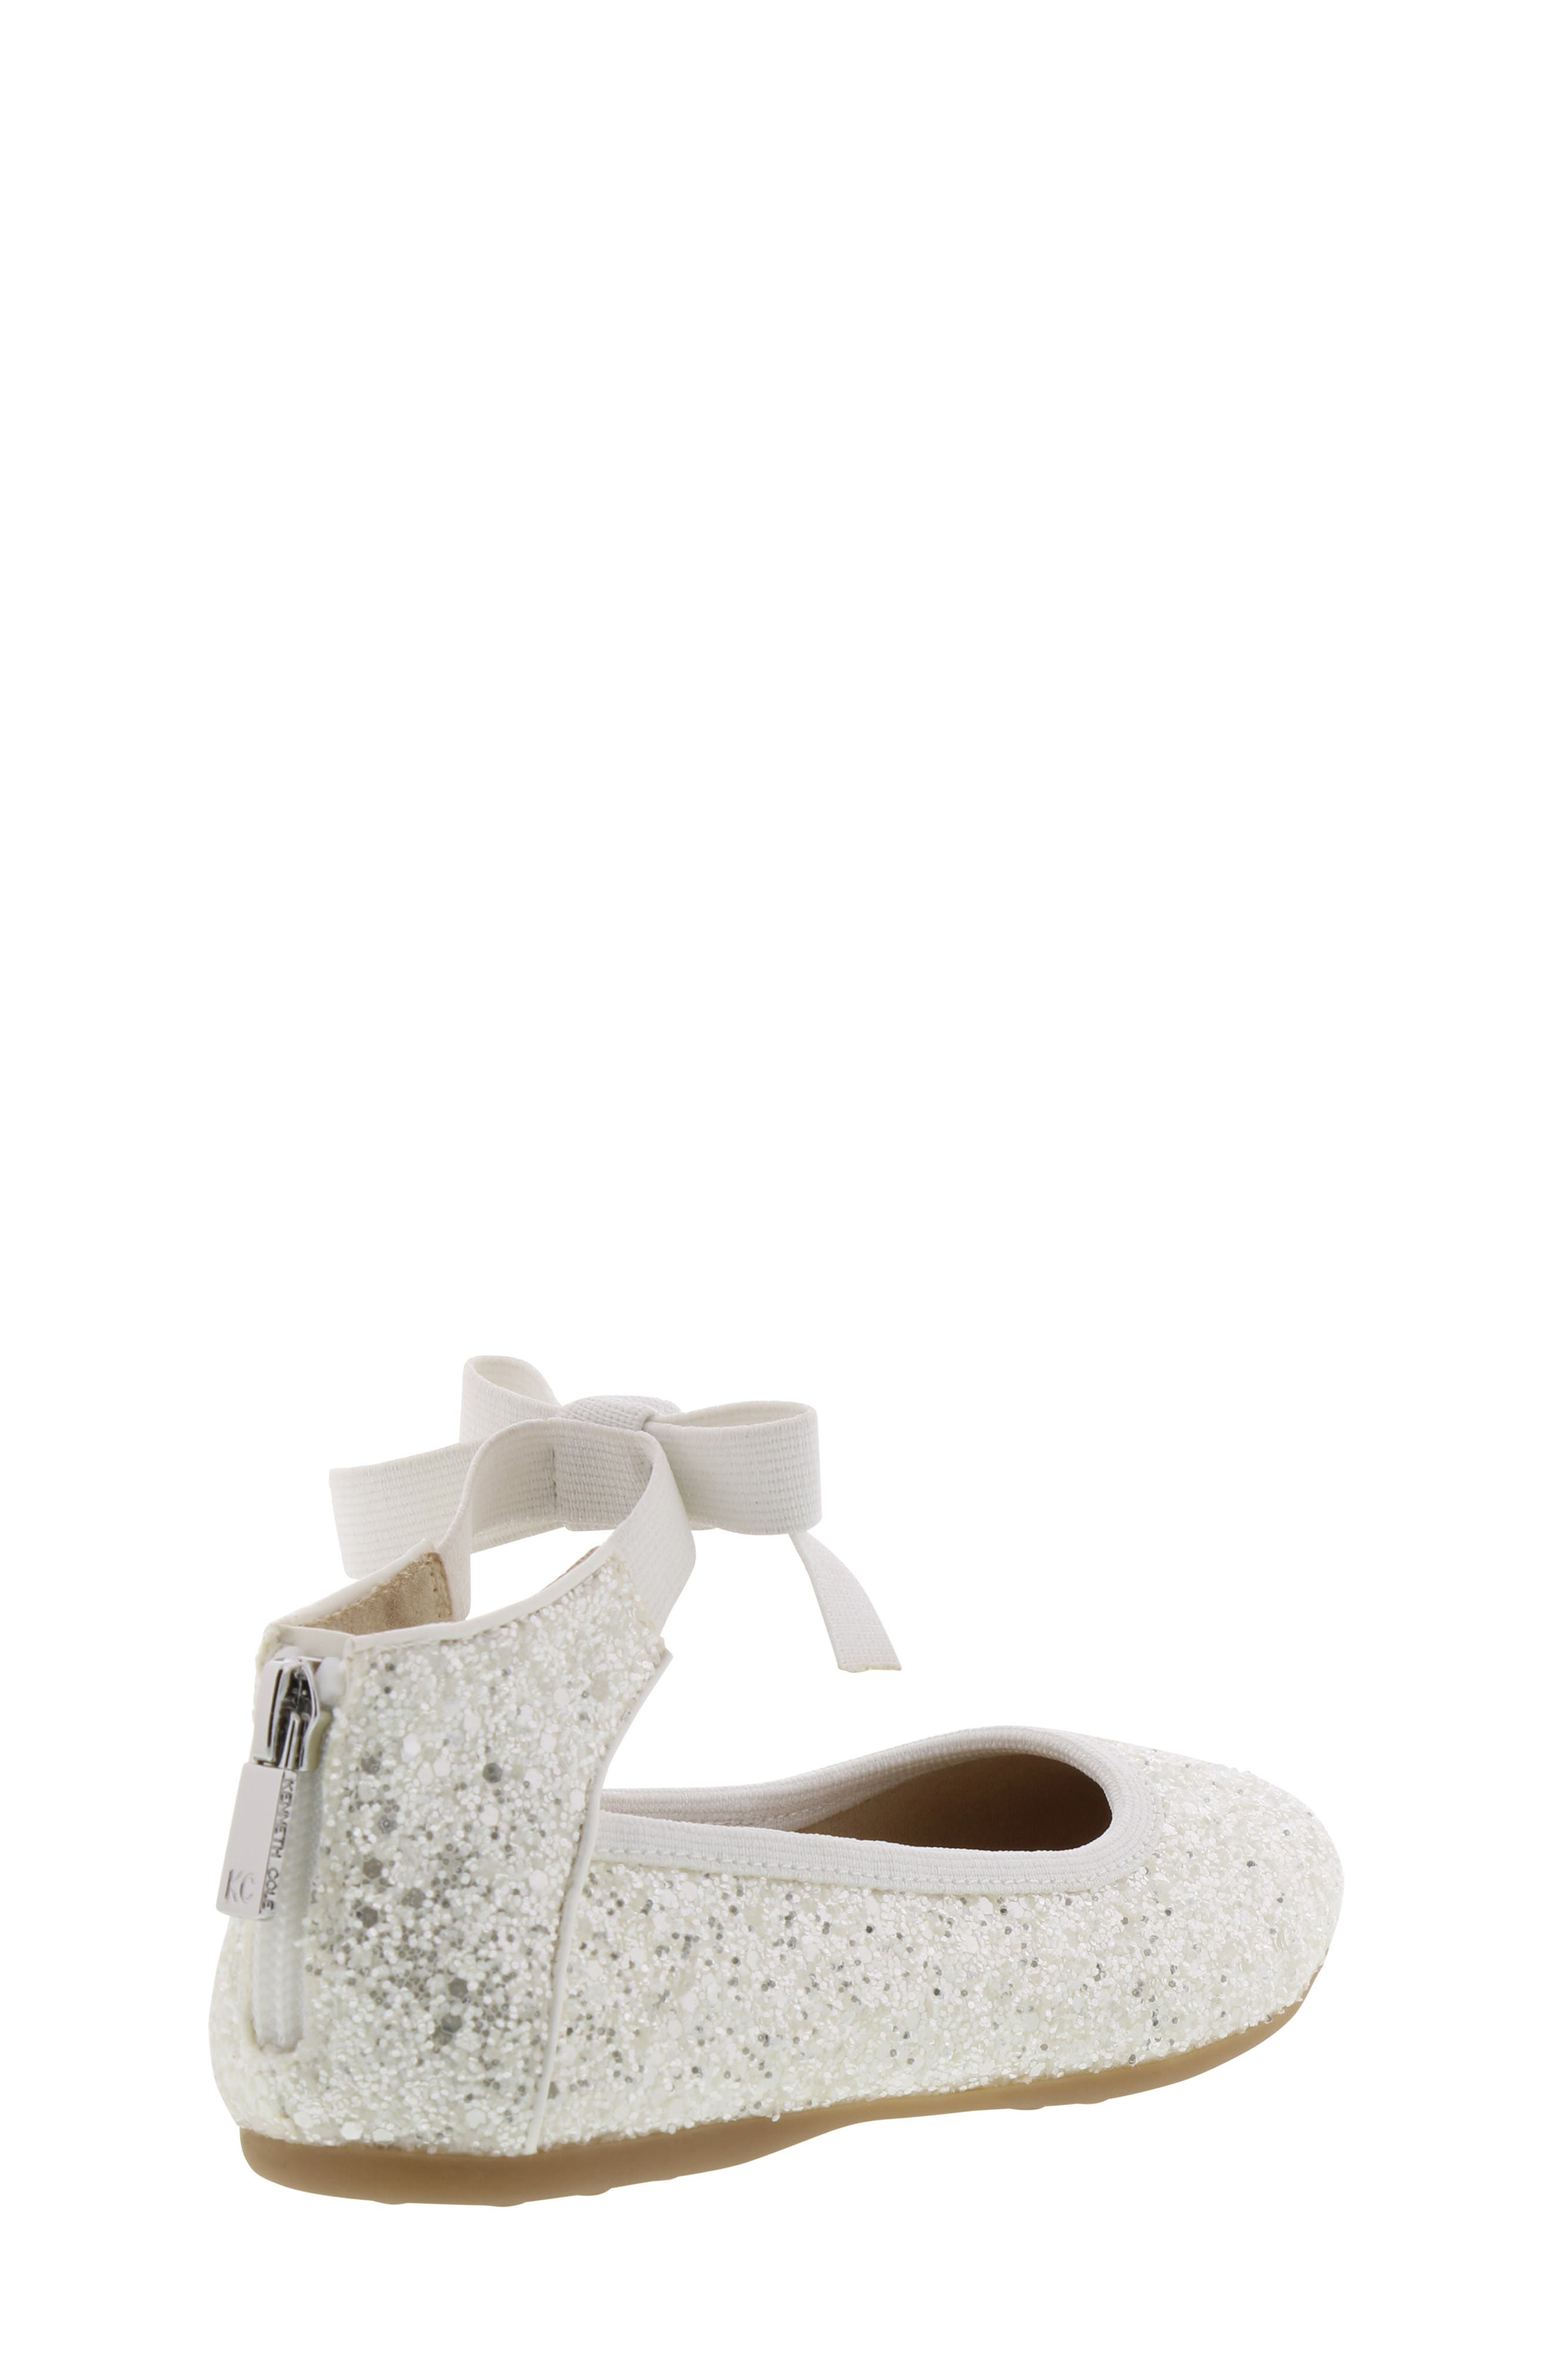 KENNETH COLE NEW YORK, Rose Bow Ballet Flat, Alternate thumbnail 2, color, WHITE SUGAR GLITTER